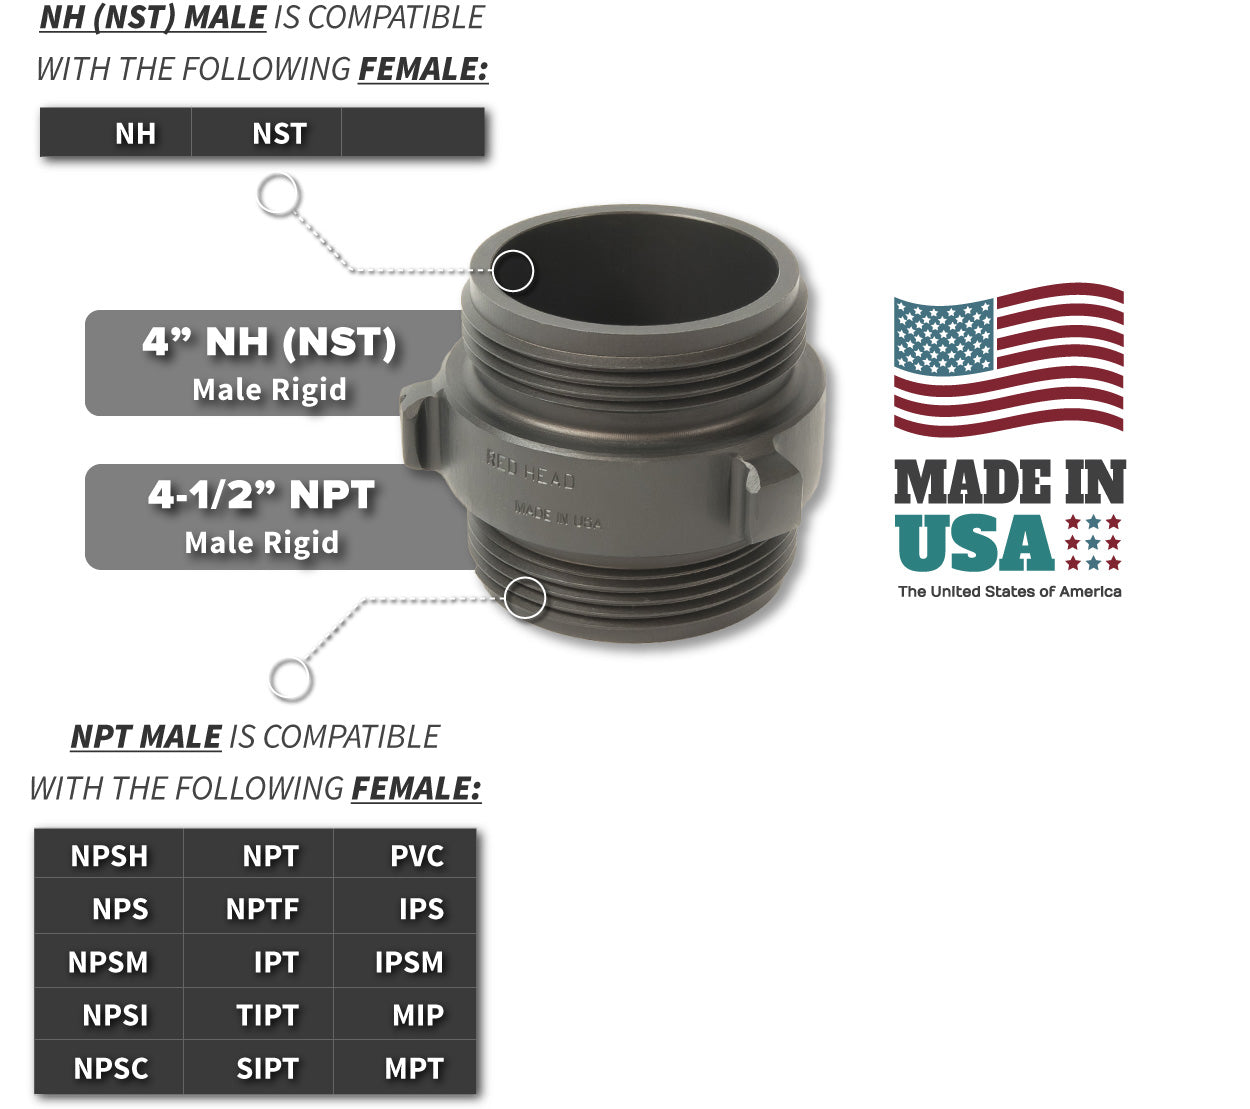 4 Inch NH-NST Male x 4.5 Inch NPT Male Compatibility Thread Chart